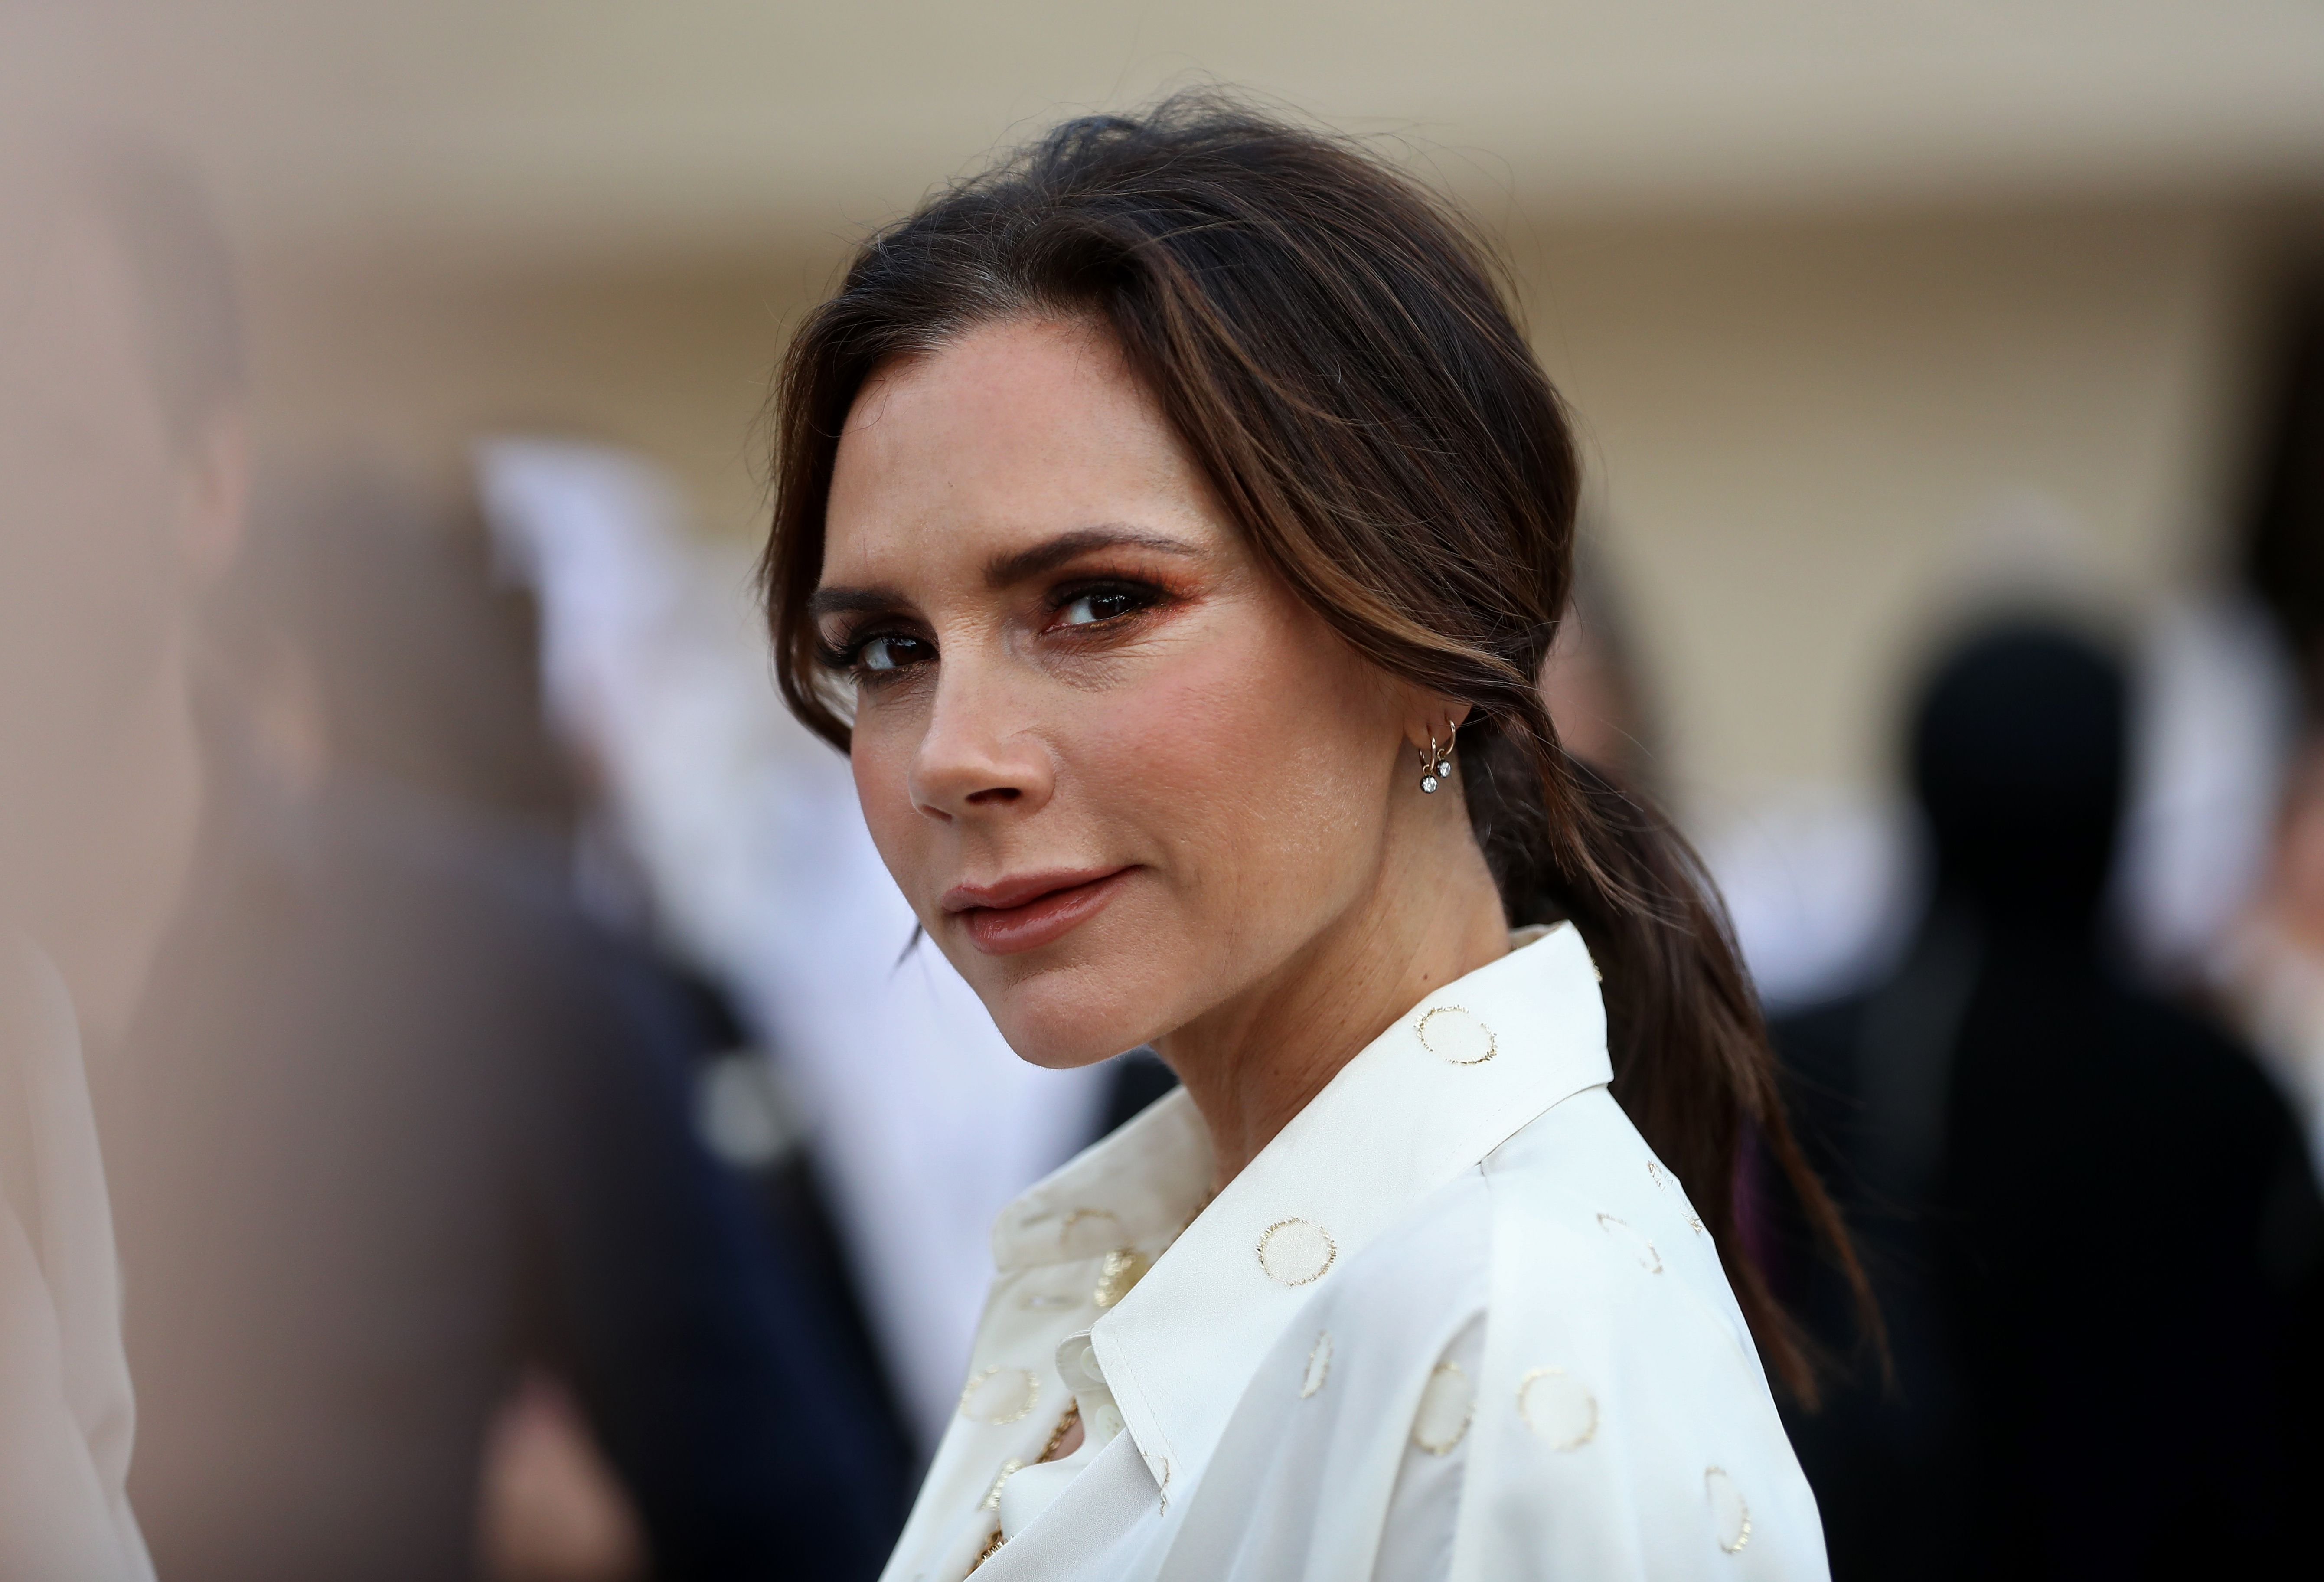 British singer and fashion designer Victoria Beckham attends the official opening ceremony for the National Museum of Qatar, in the capital Doha on March 27, 2019. - The complex architectural form of a desert rose, found in Qatars arid desert regions, inspired the striking design of the new museum building, conceived by celebrity French architect Jean Nouvel. (Photo by KARIM JAAFAR / AFP)        (Photo credit should read KARIM JAAFAR/AFP/Getty Images)